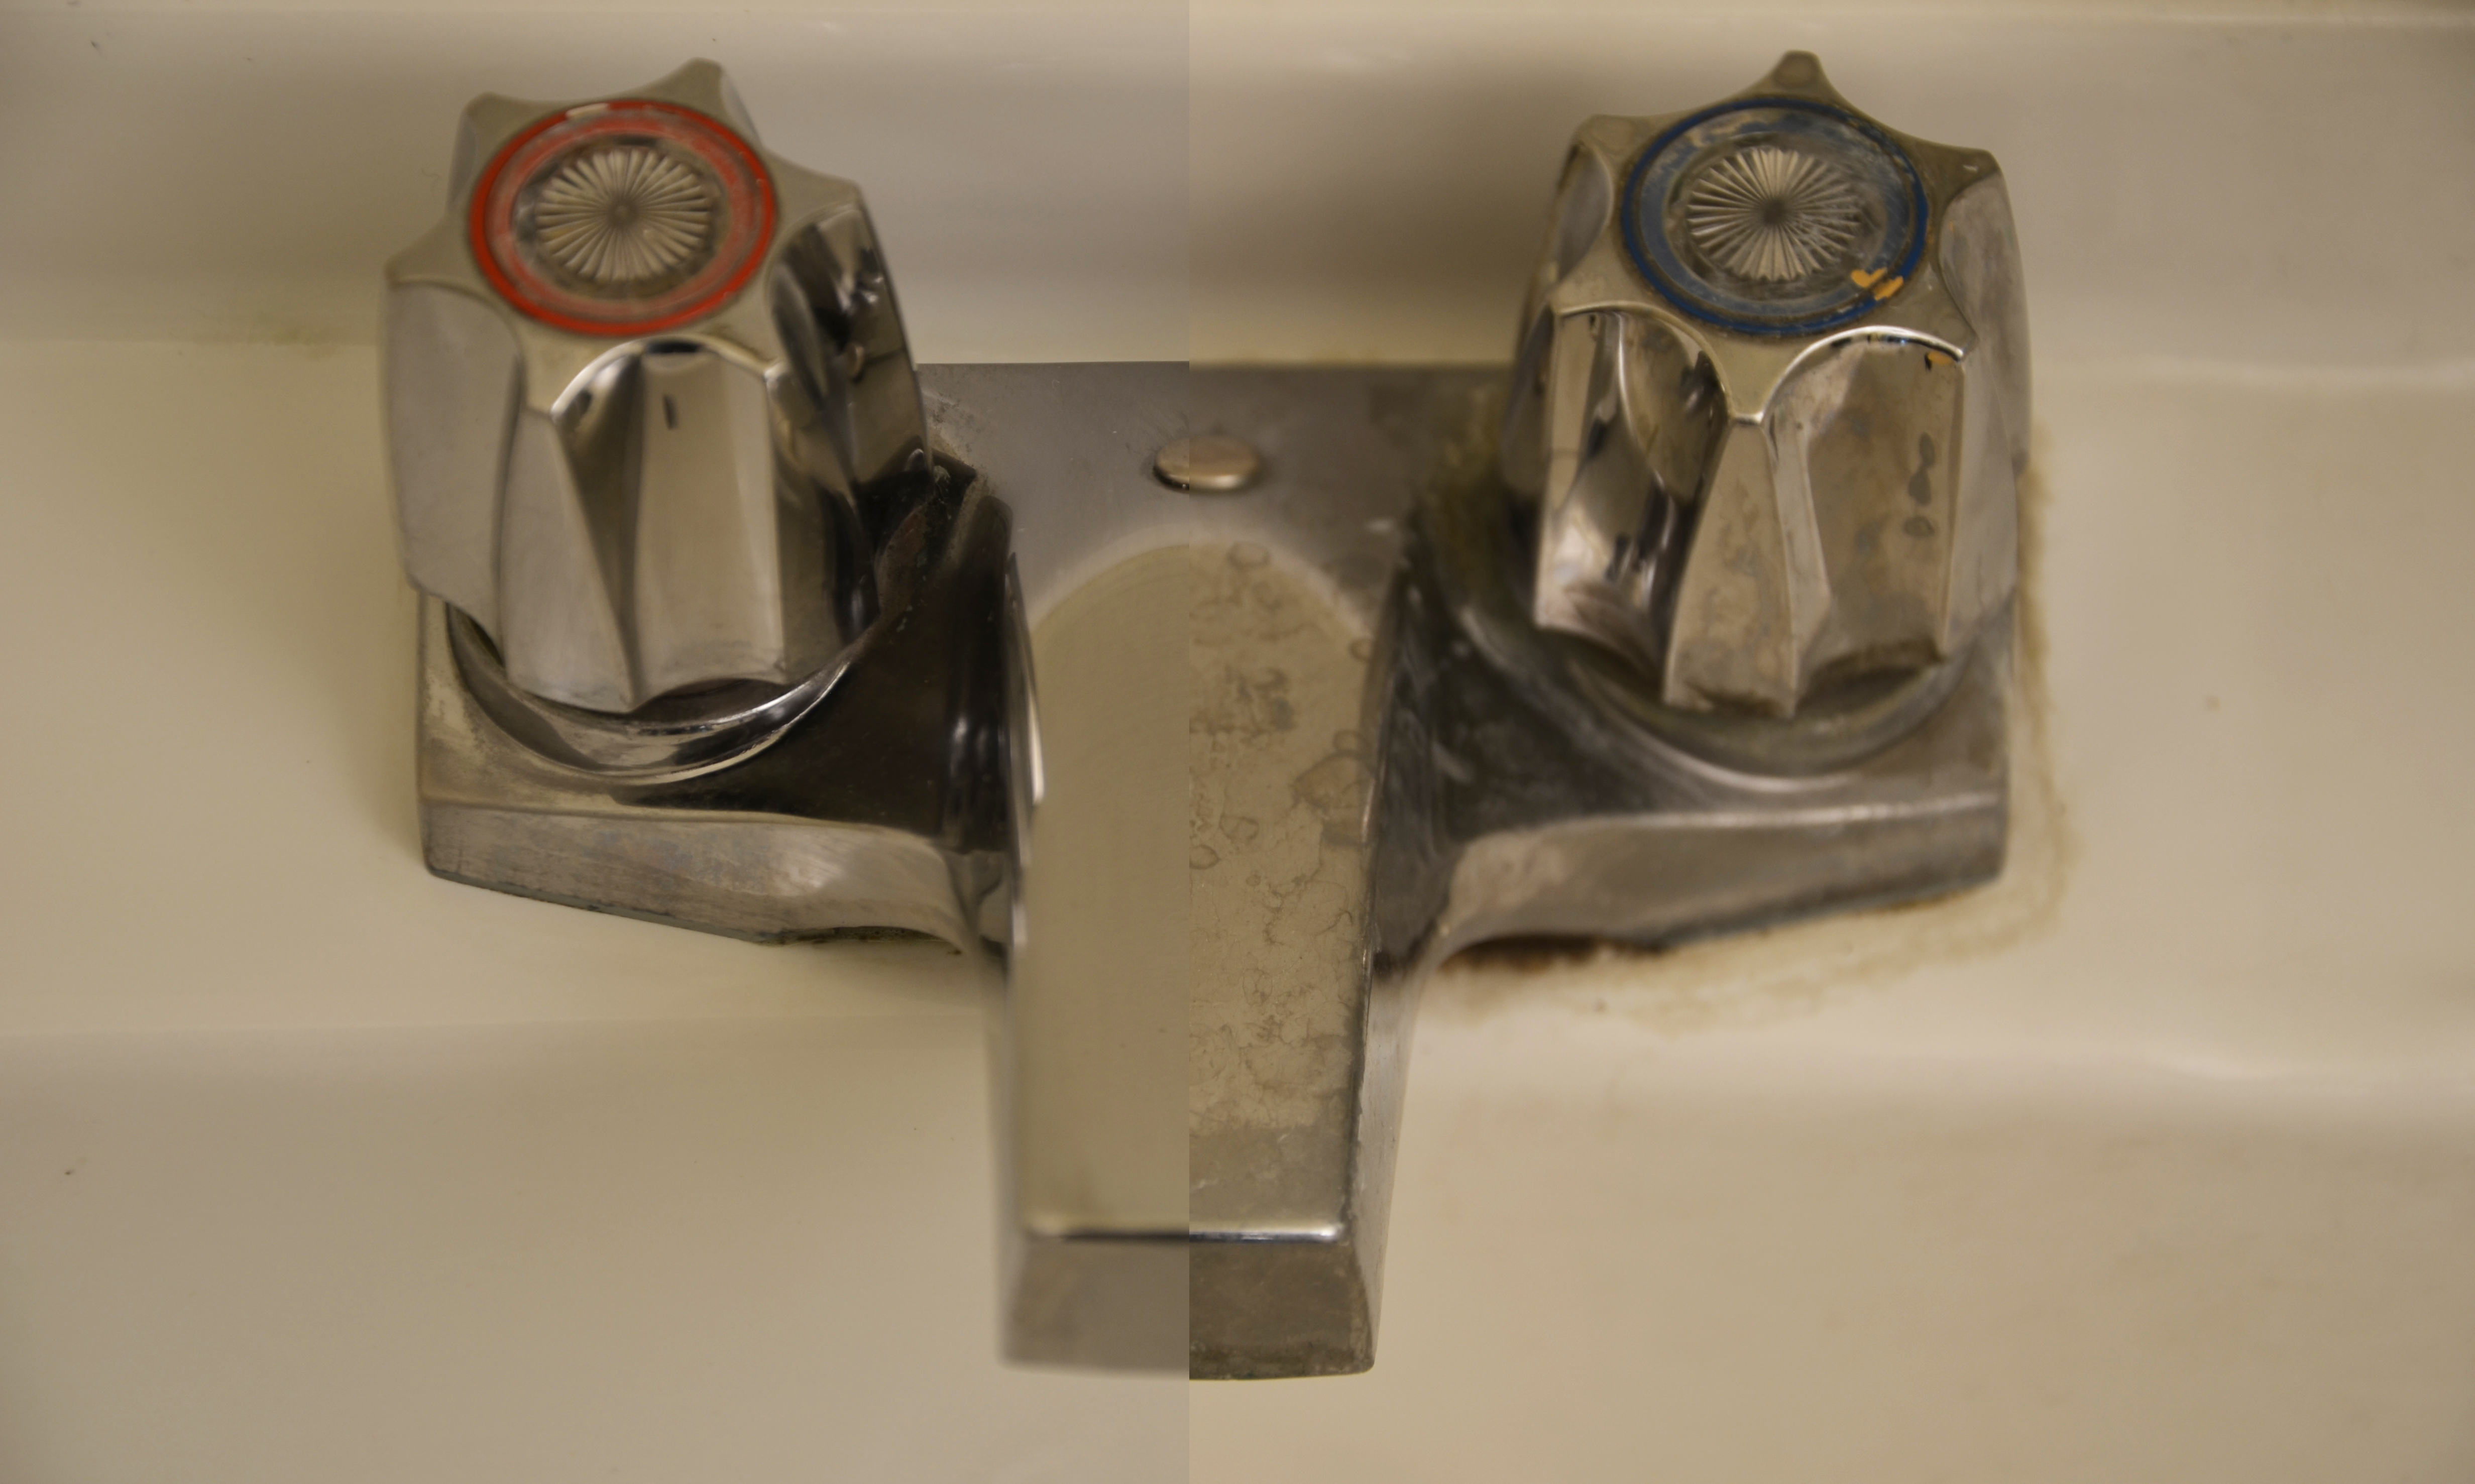 Calcium Buildup on Sinks and Taps: The janitorial supplies you need